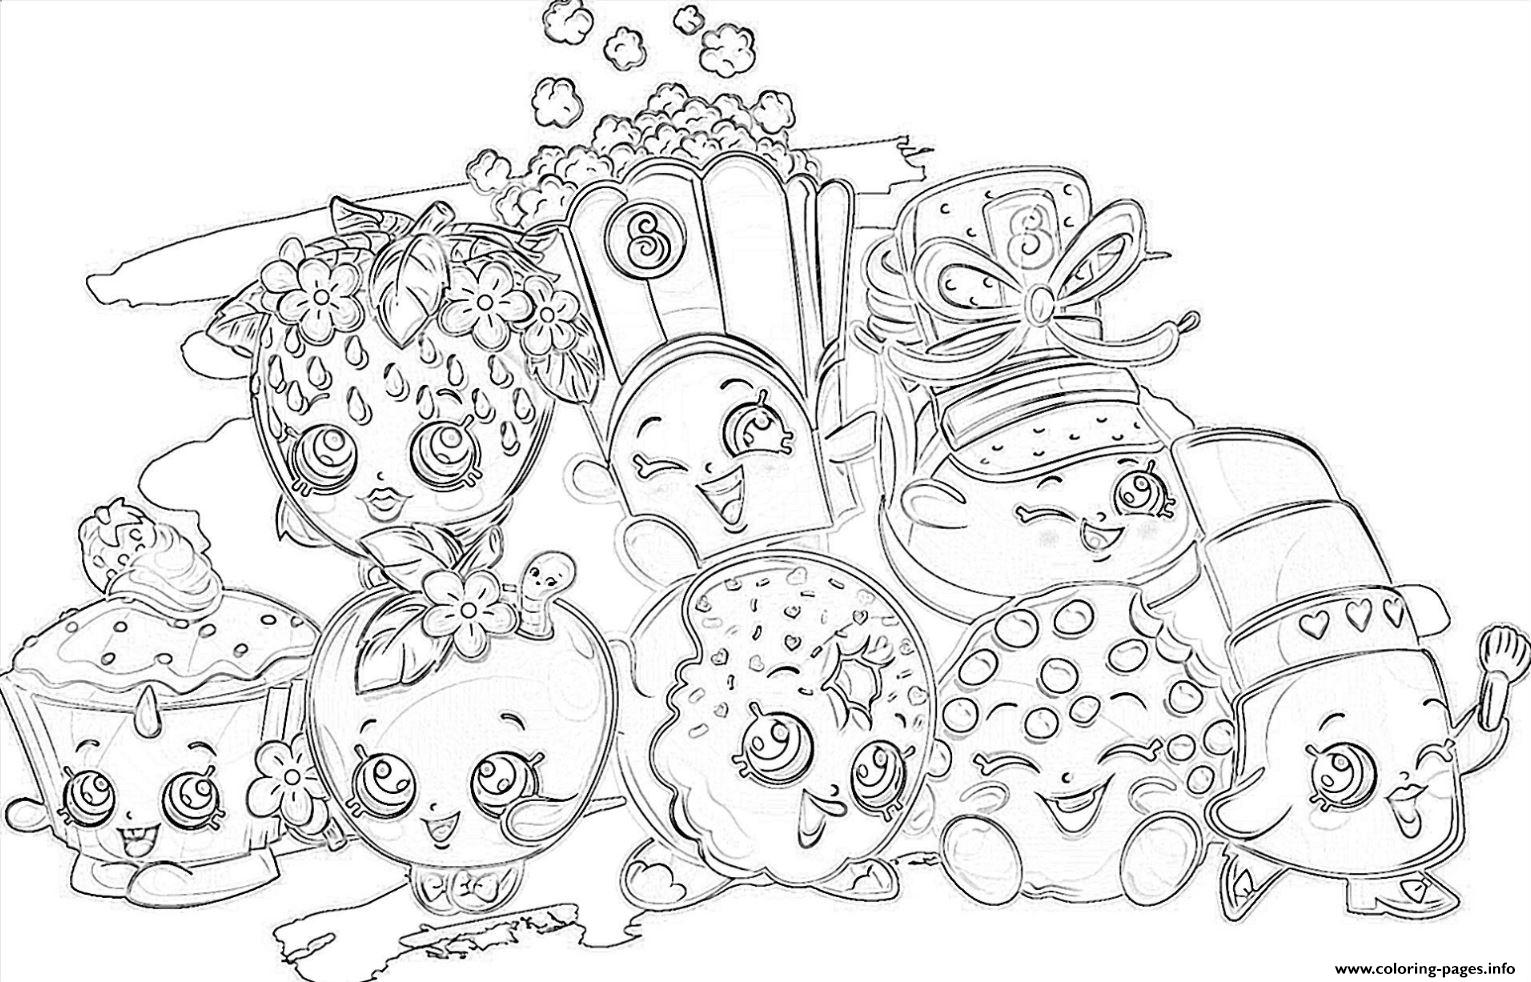 shopkins all the family coloring pages printable - Hopkins Coloring Pages Print